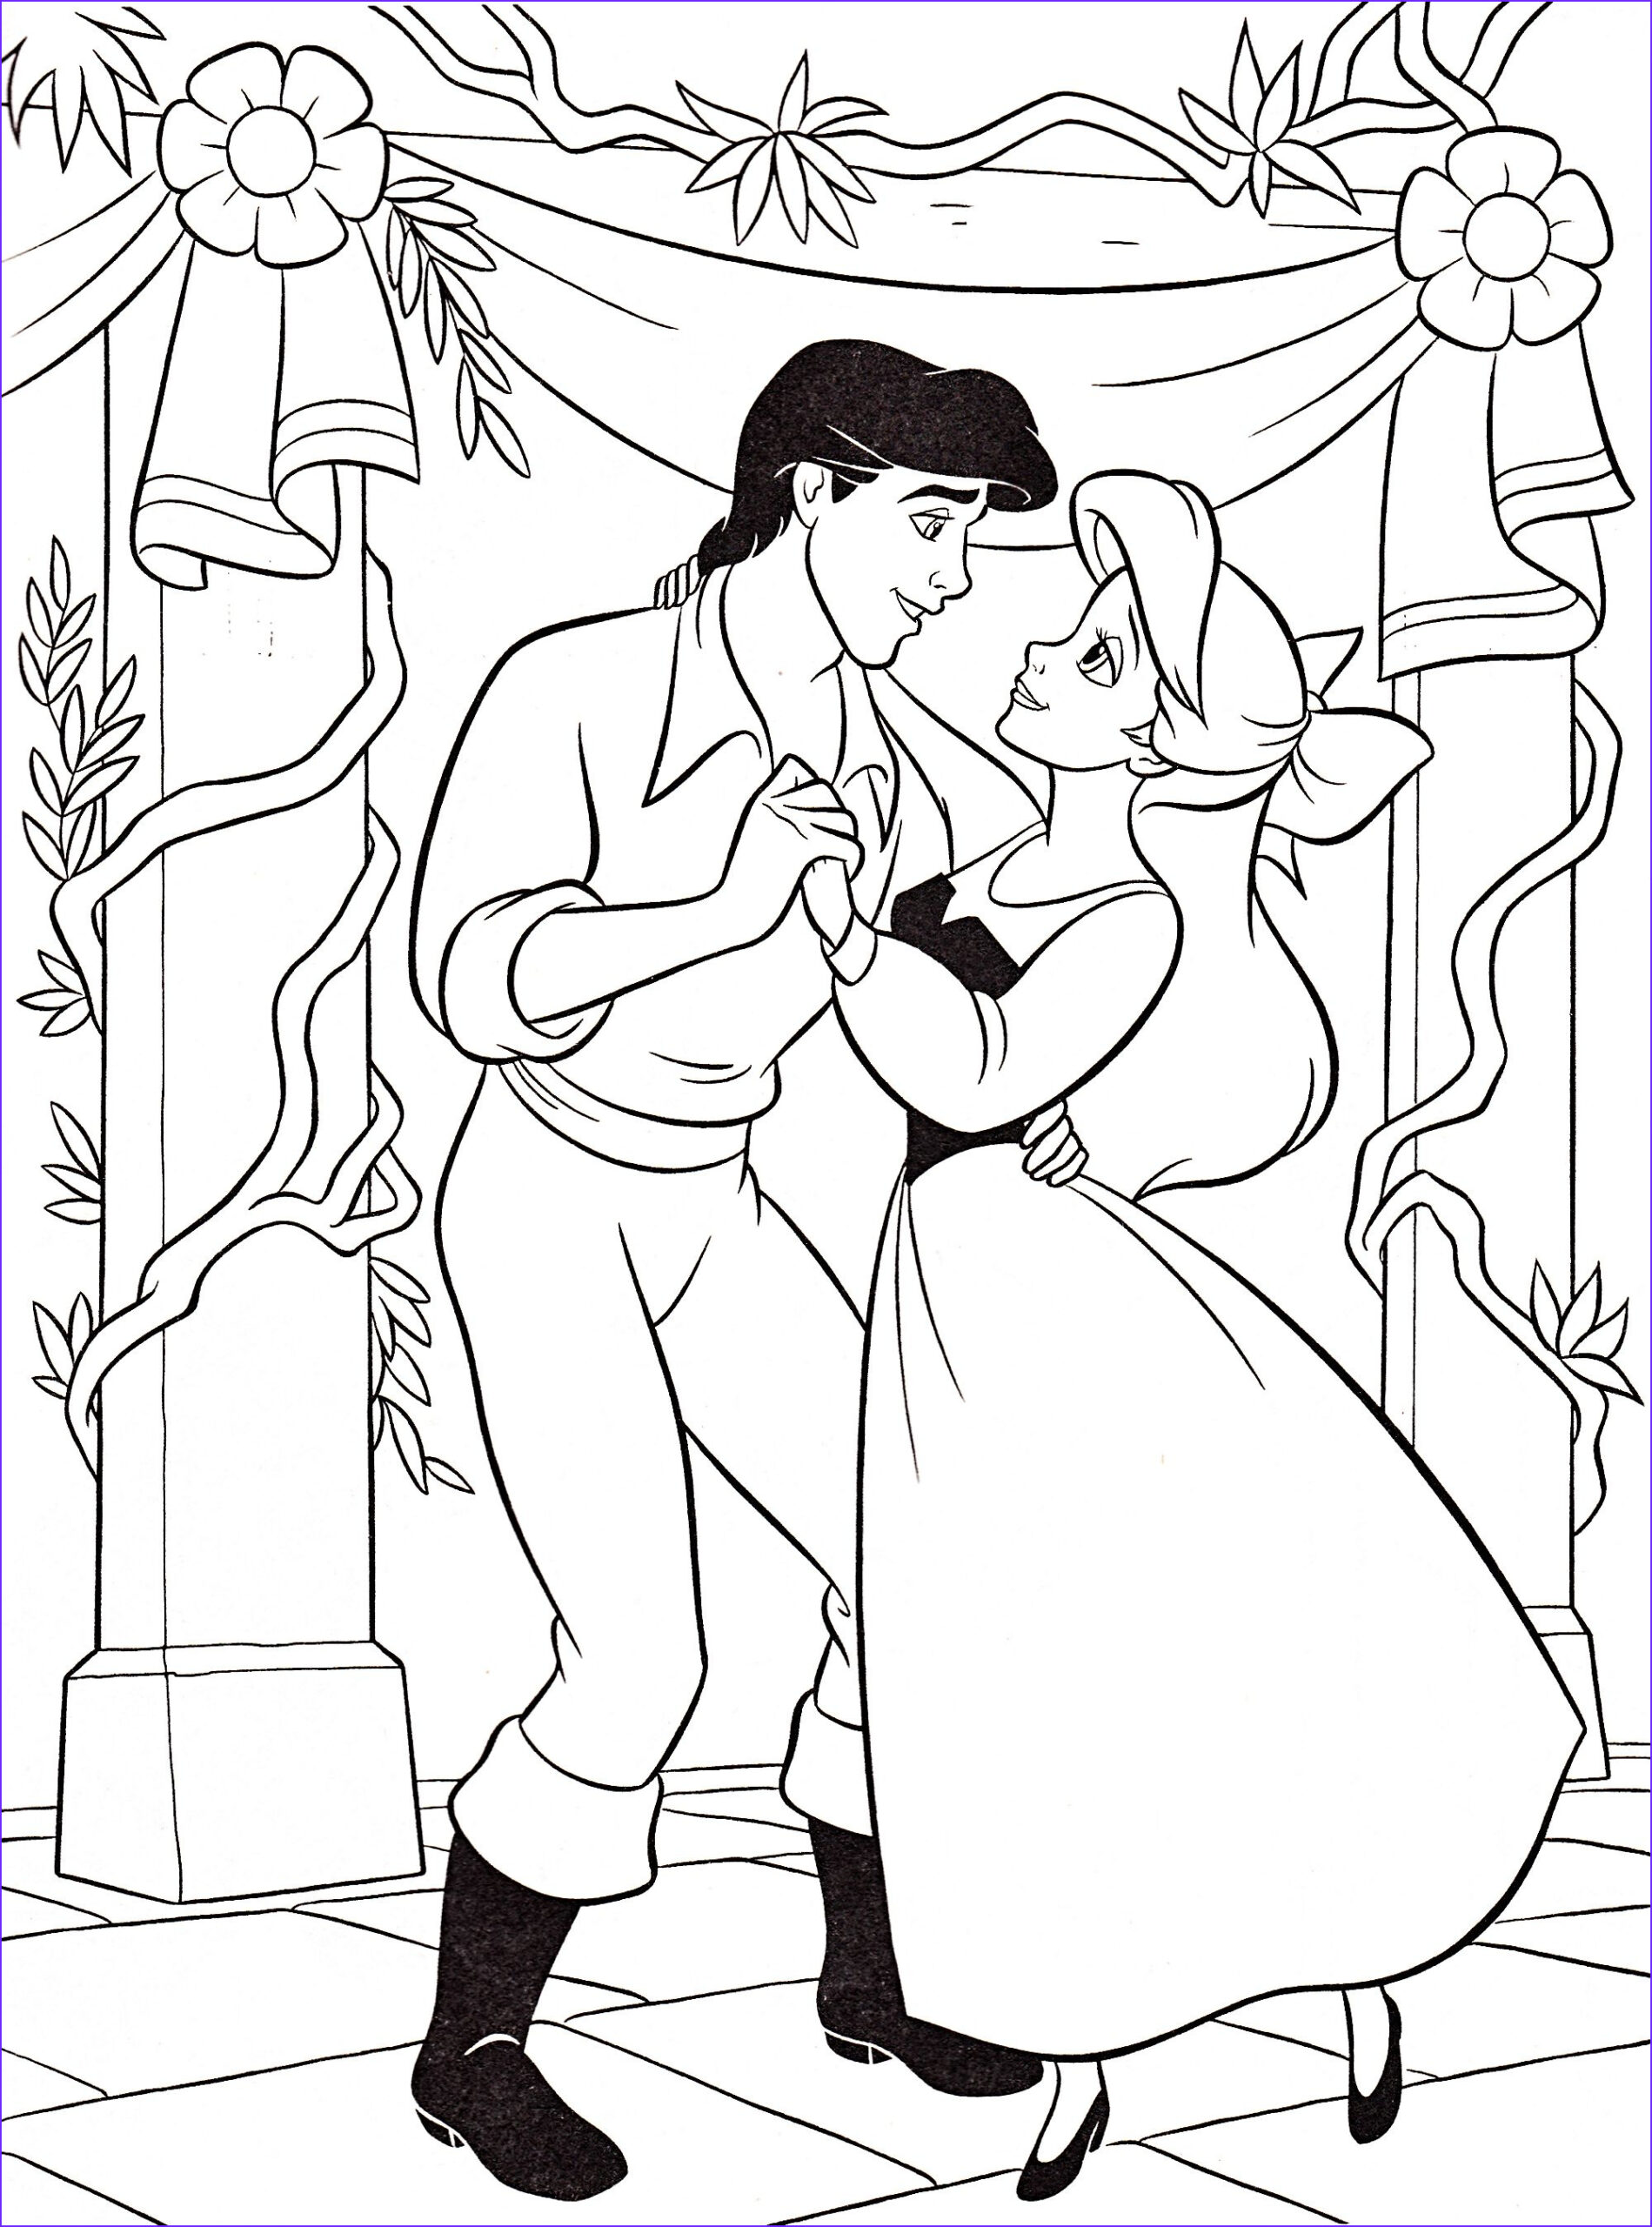 Disney Adult Coloring Book Beautiful Gallery Disney Tangled Coloring Pages Printable